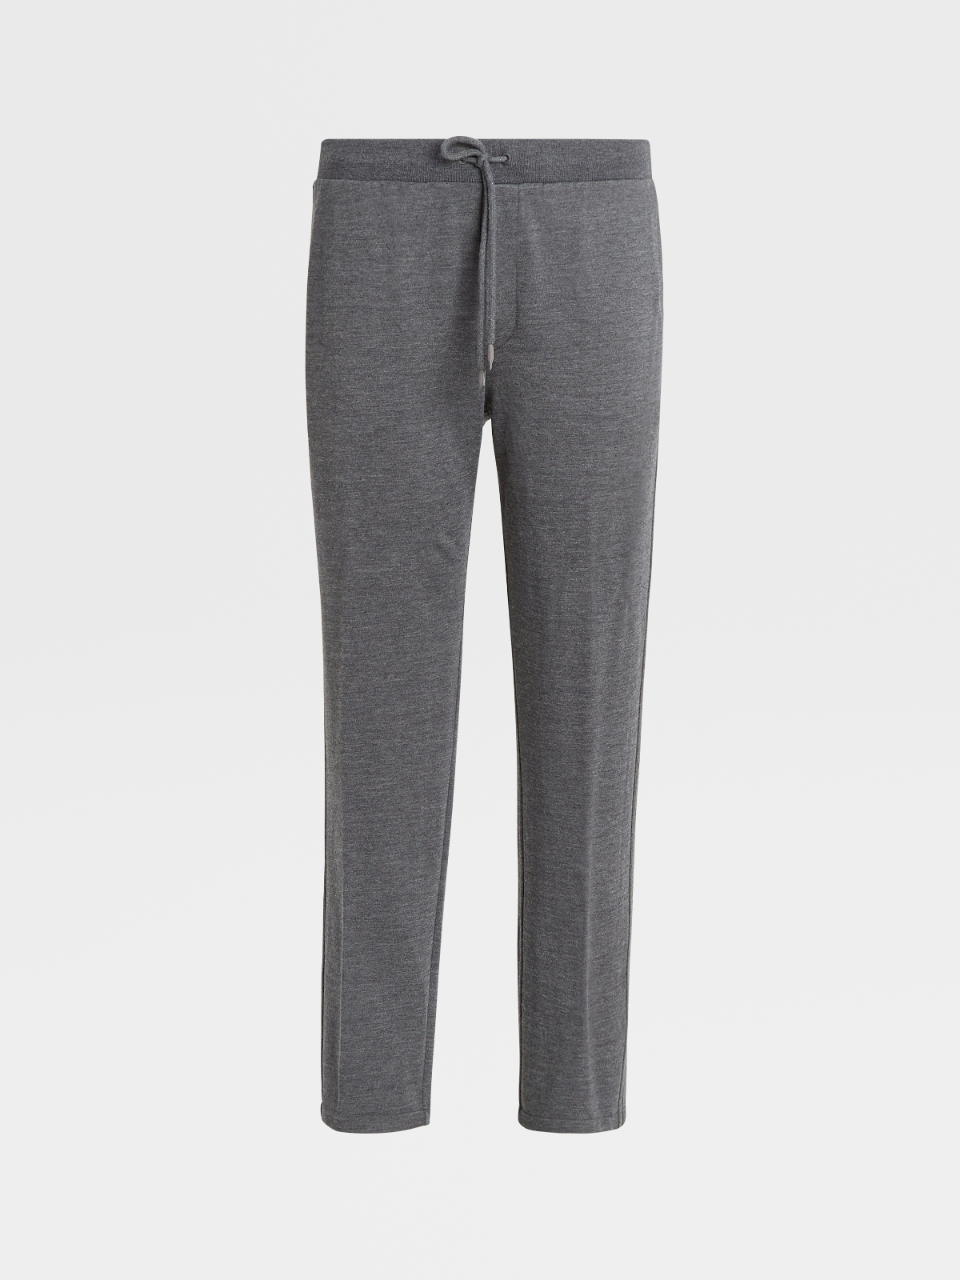 Wool, Silk And Cotton Sweatpants